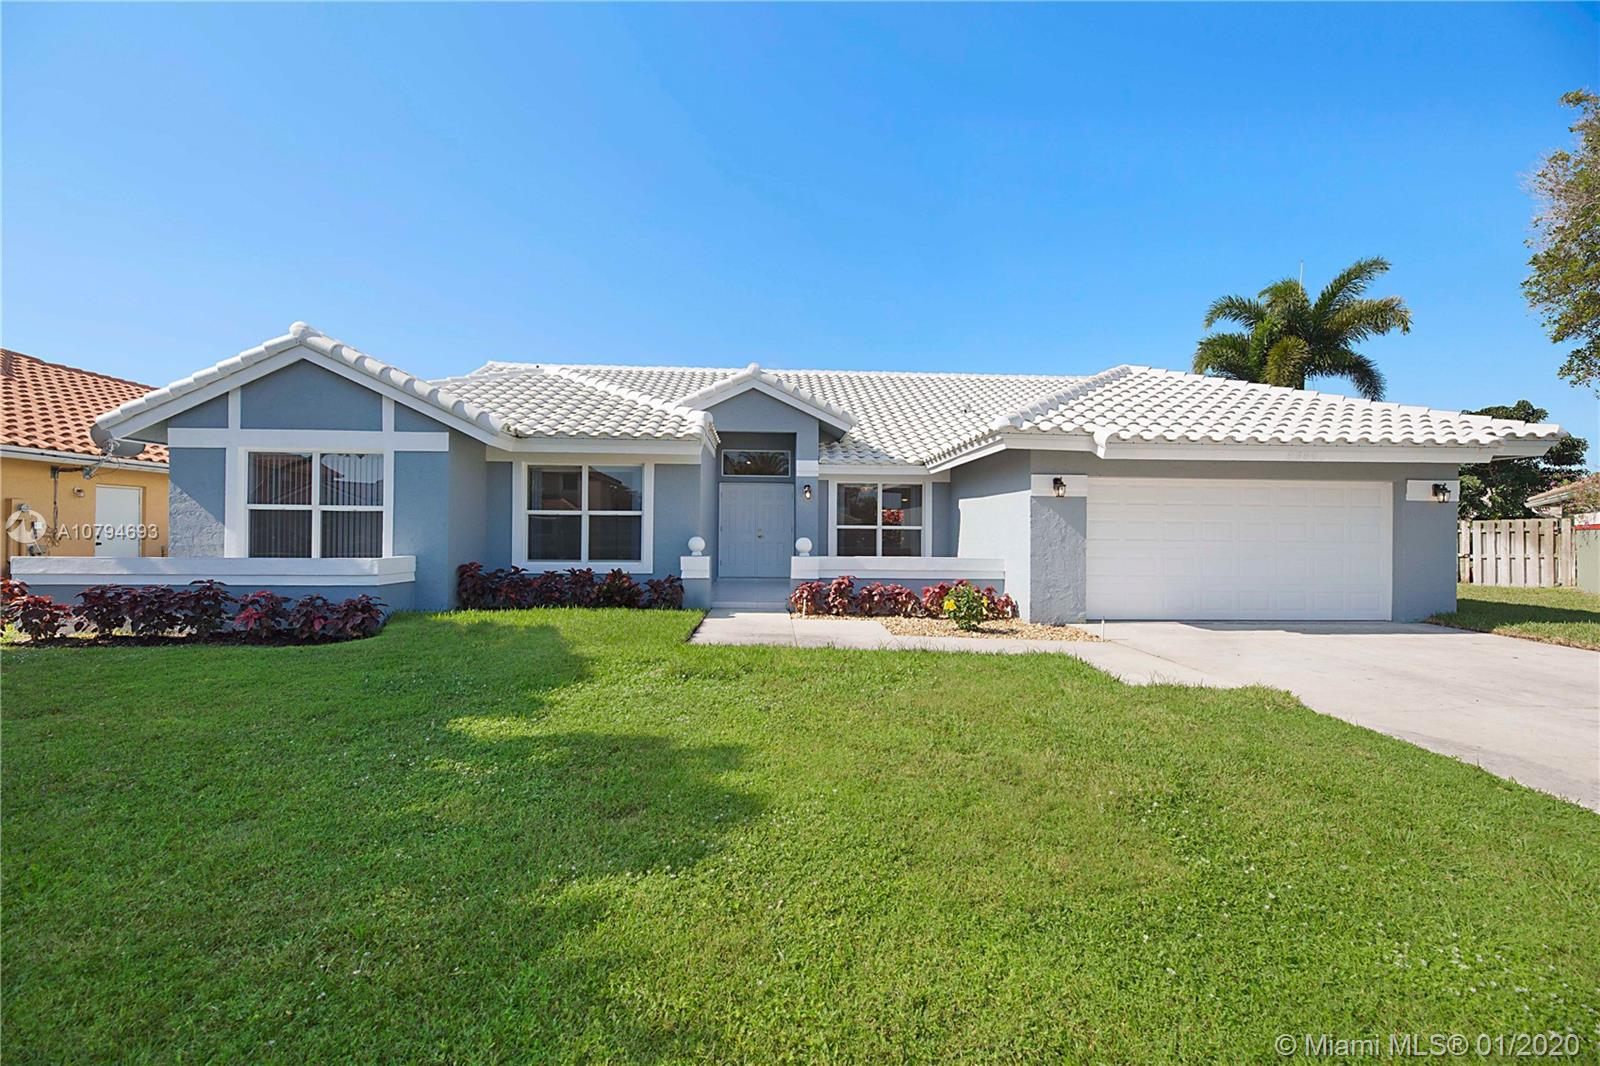 9696 W Lake Ct, Boca Raton, FL 33434